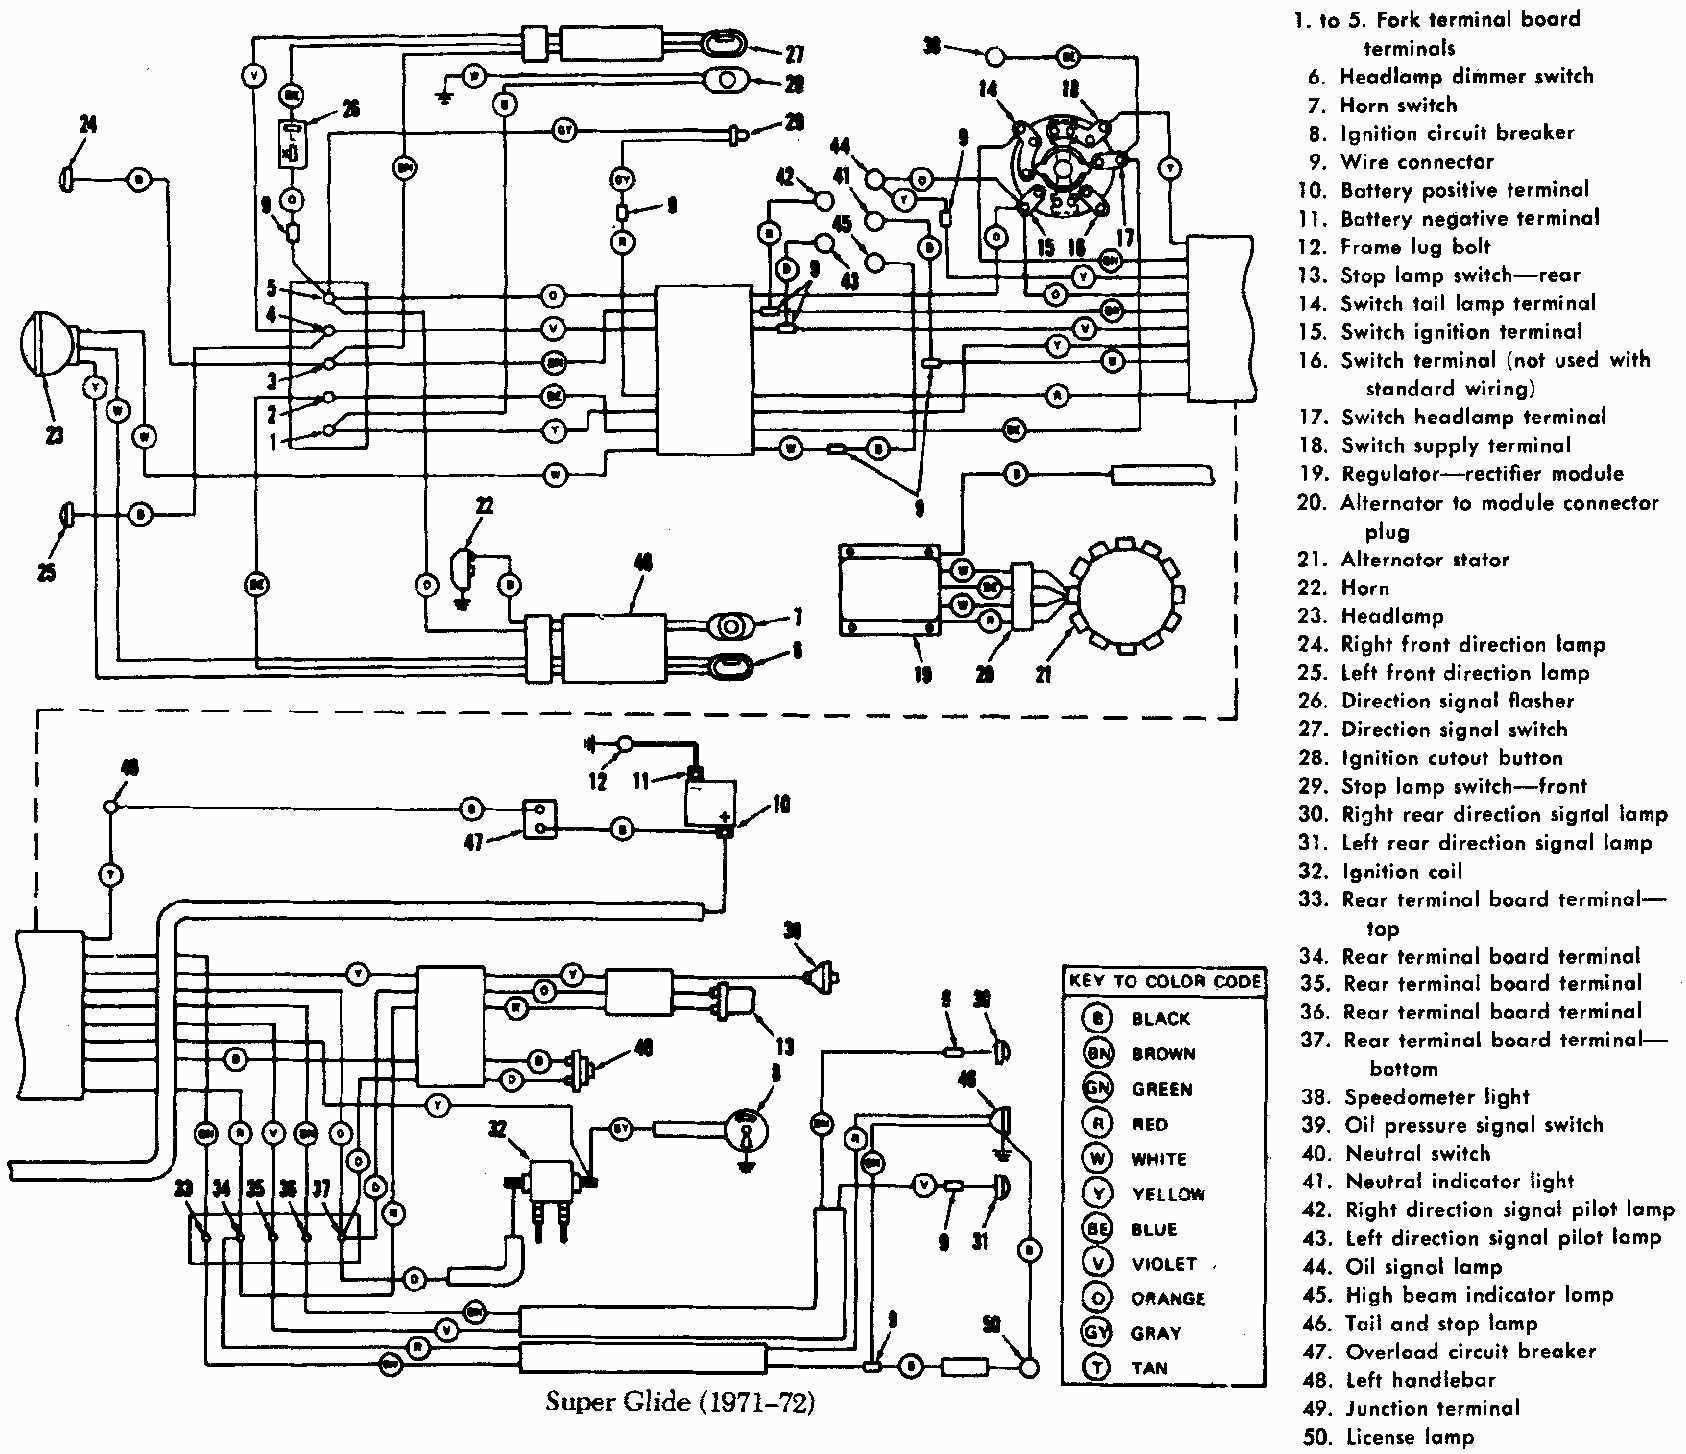 66 Chevelle Wiring Diagram Wiring Diagram Toolbox